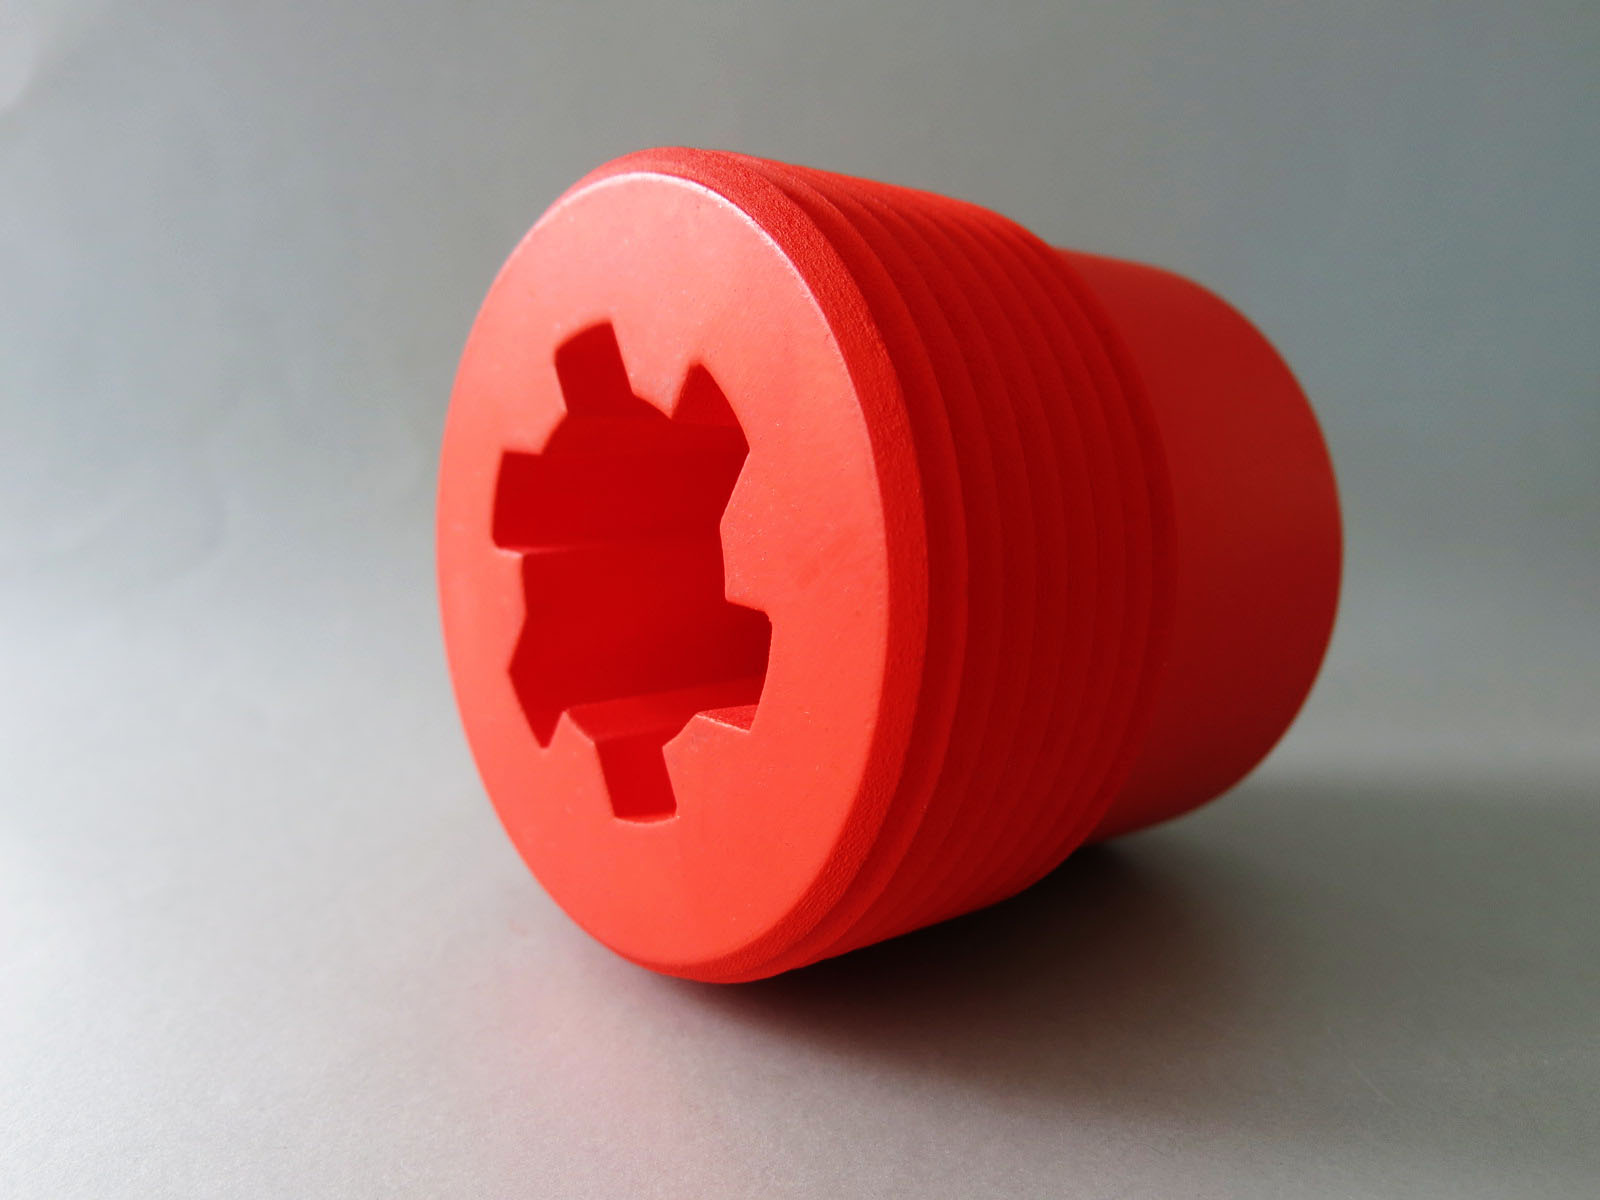 Set of 3D printed objects in black, translucent red and transparent resin